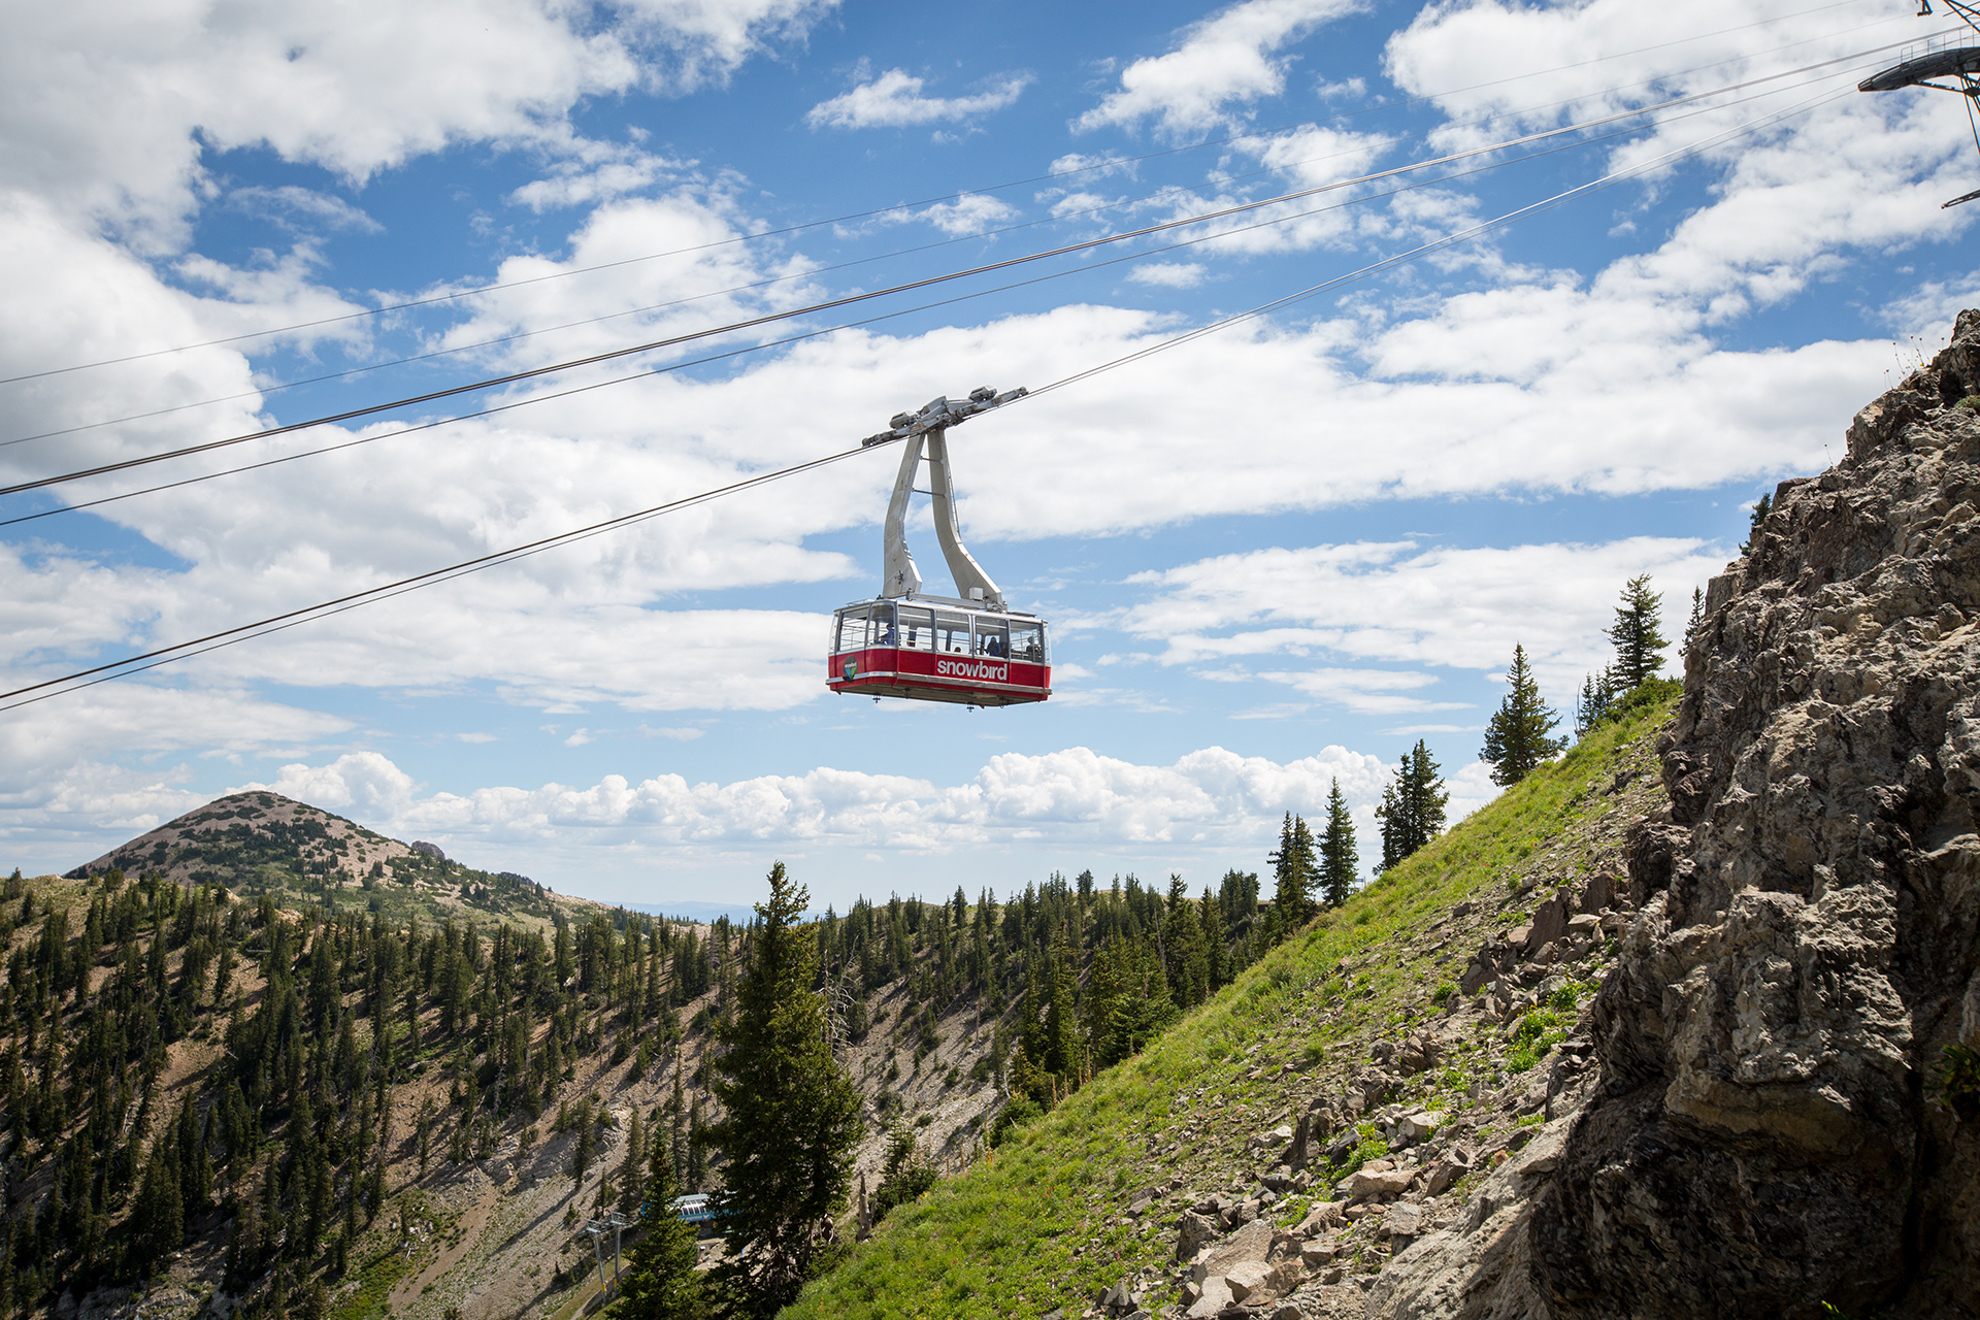 Snowbird Bird Bundle Activity Pass for Tram